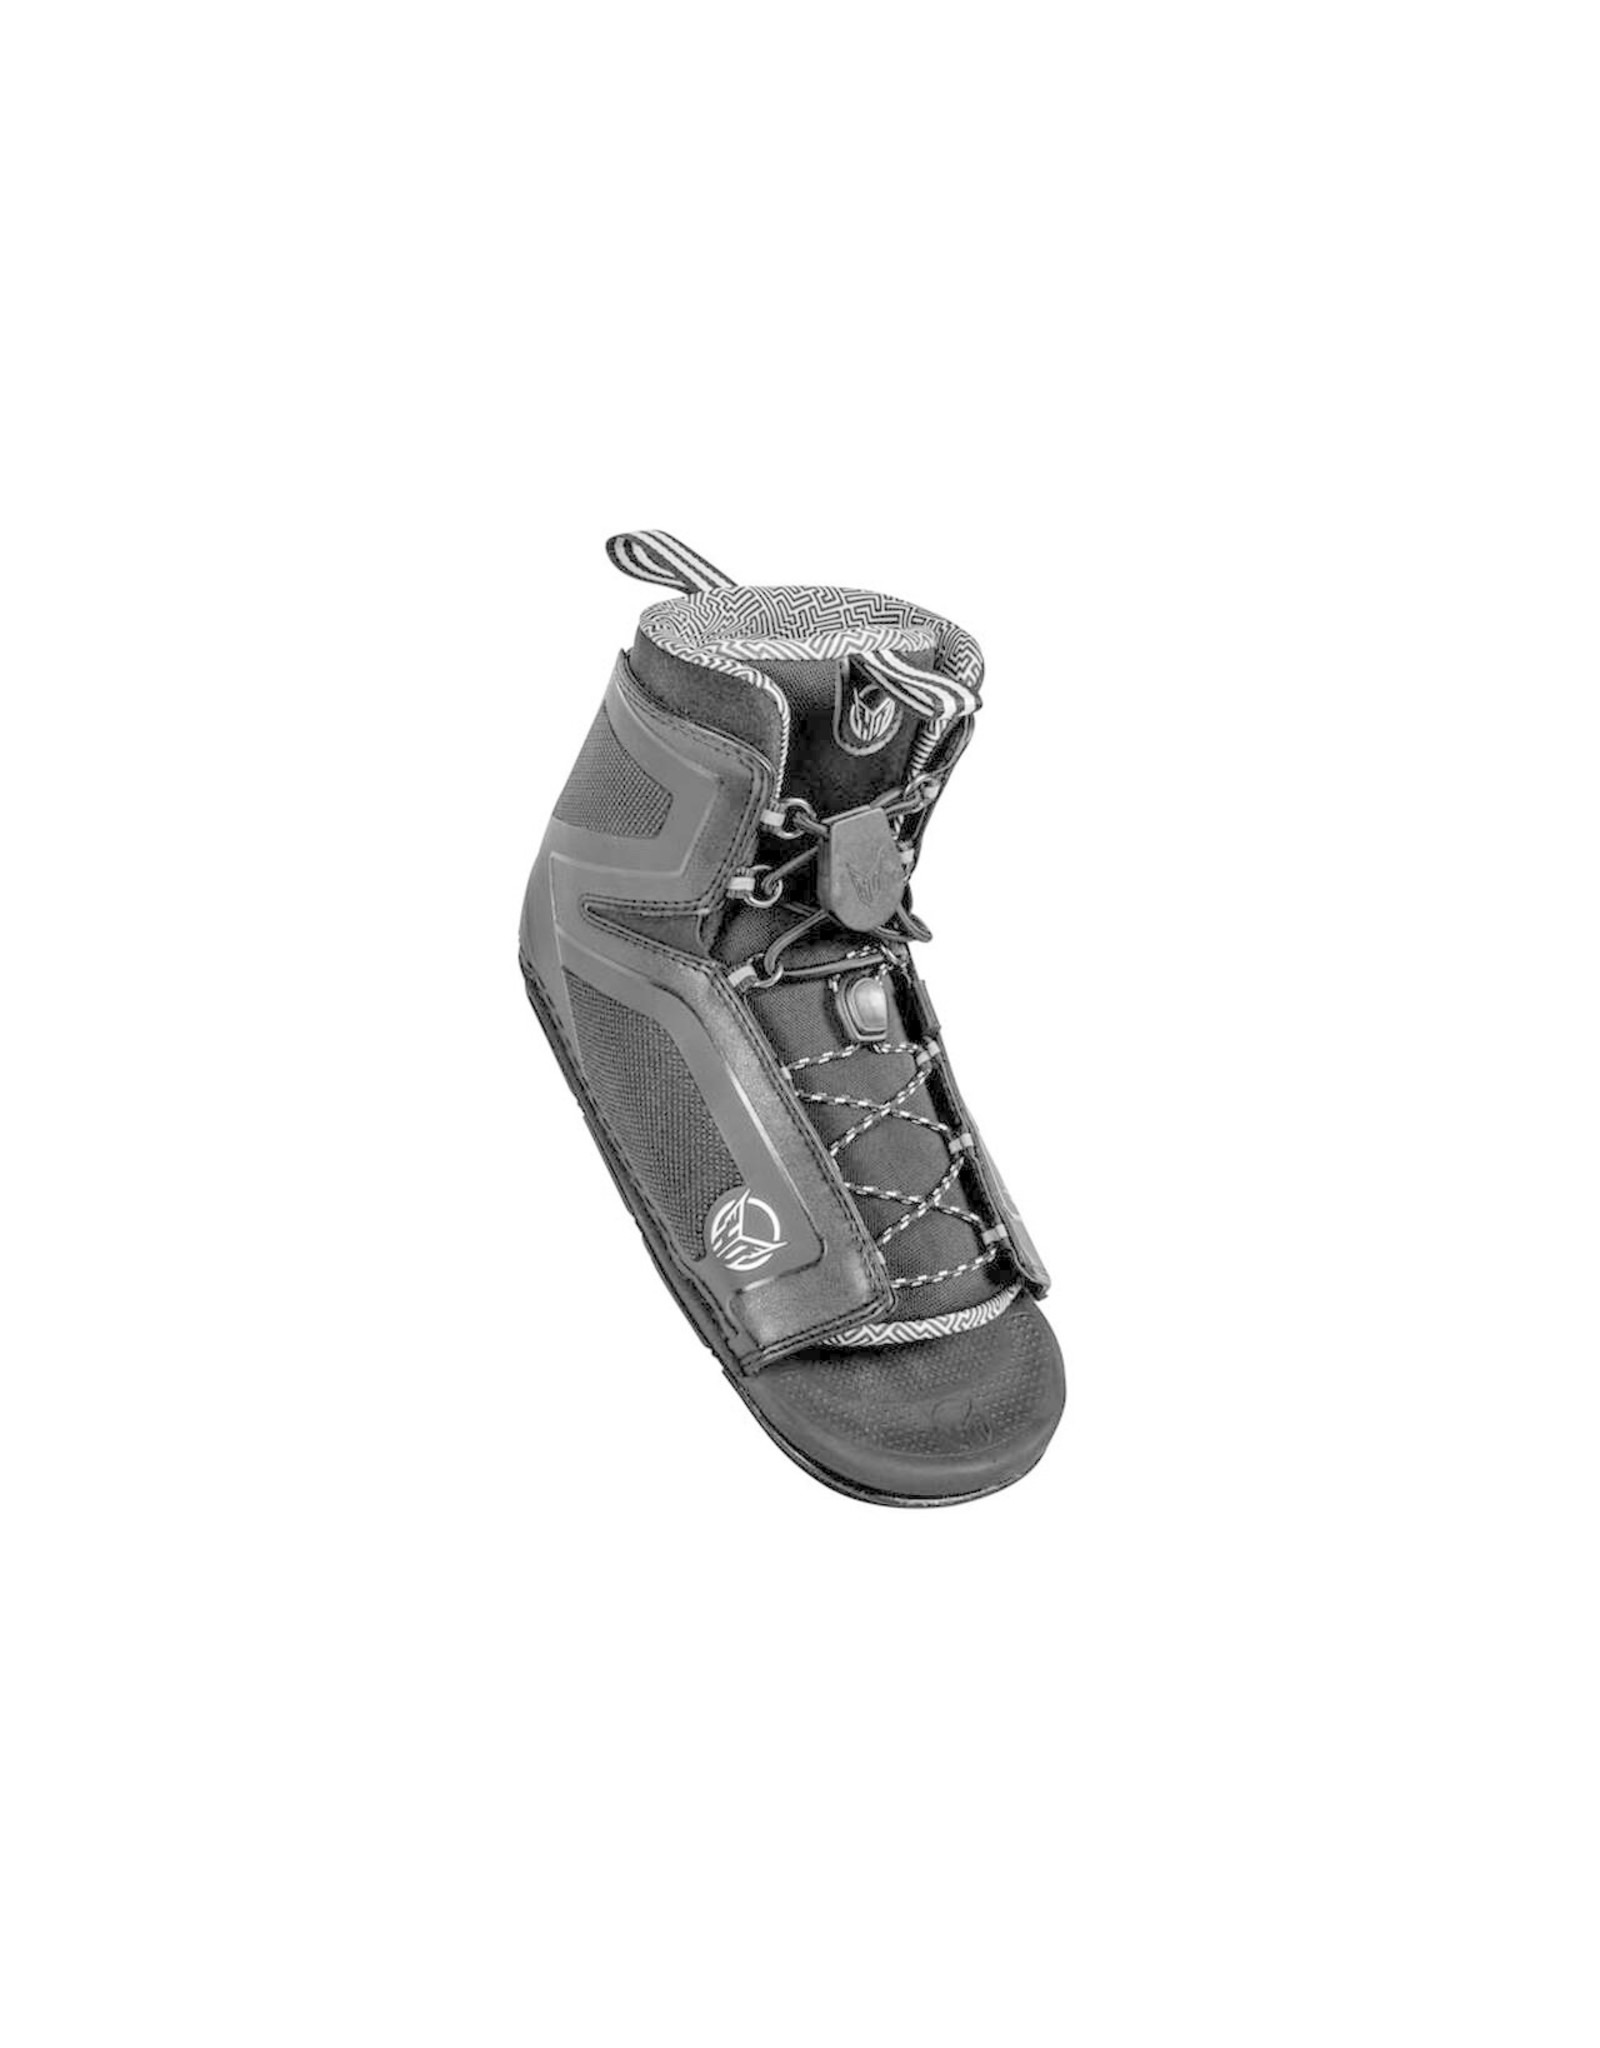 HO/Hyperlite 2021 110 Stance Direct Connect